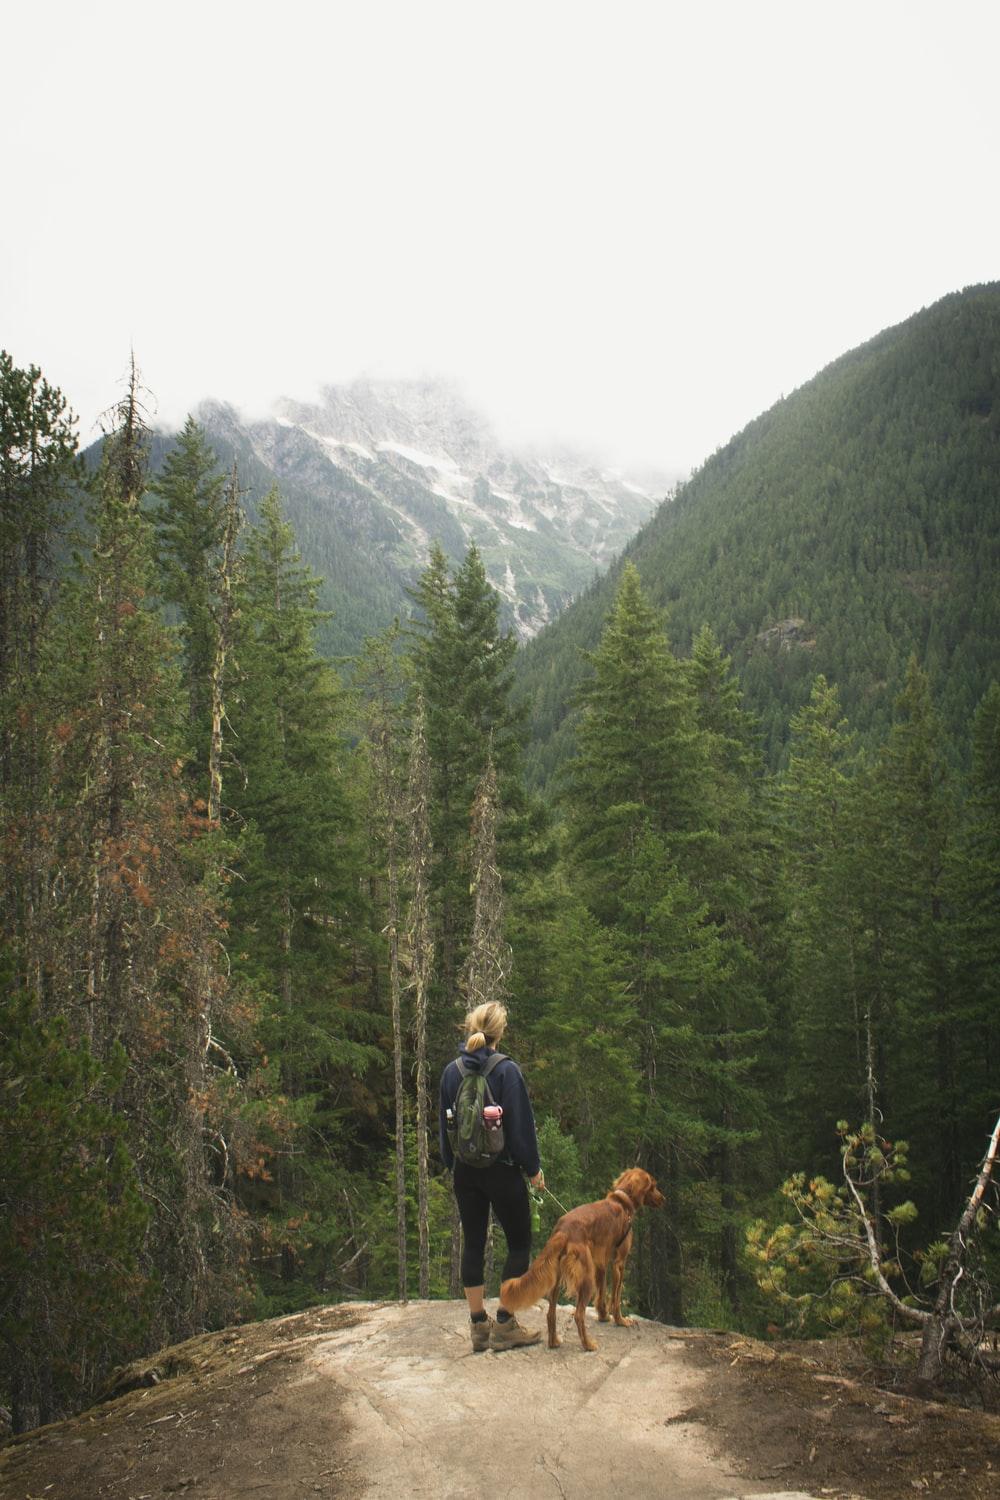 woman with dog standing on edge of cliff facing forest and mountain